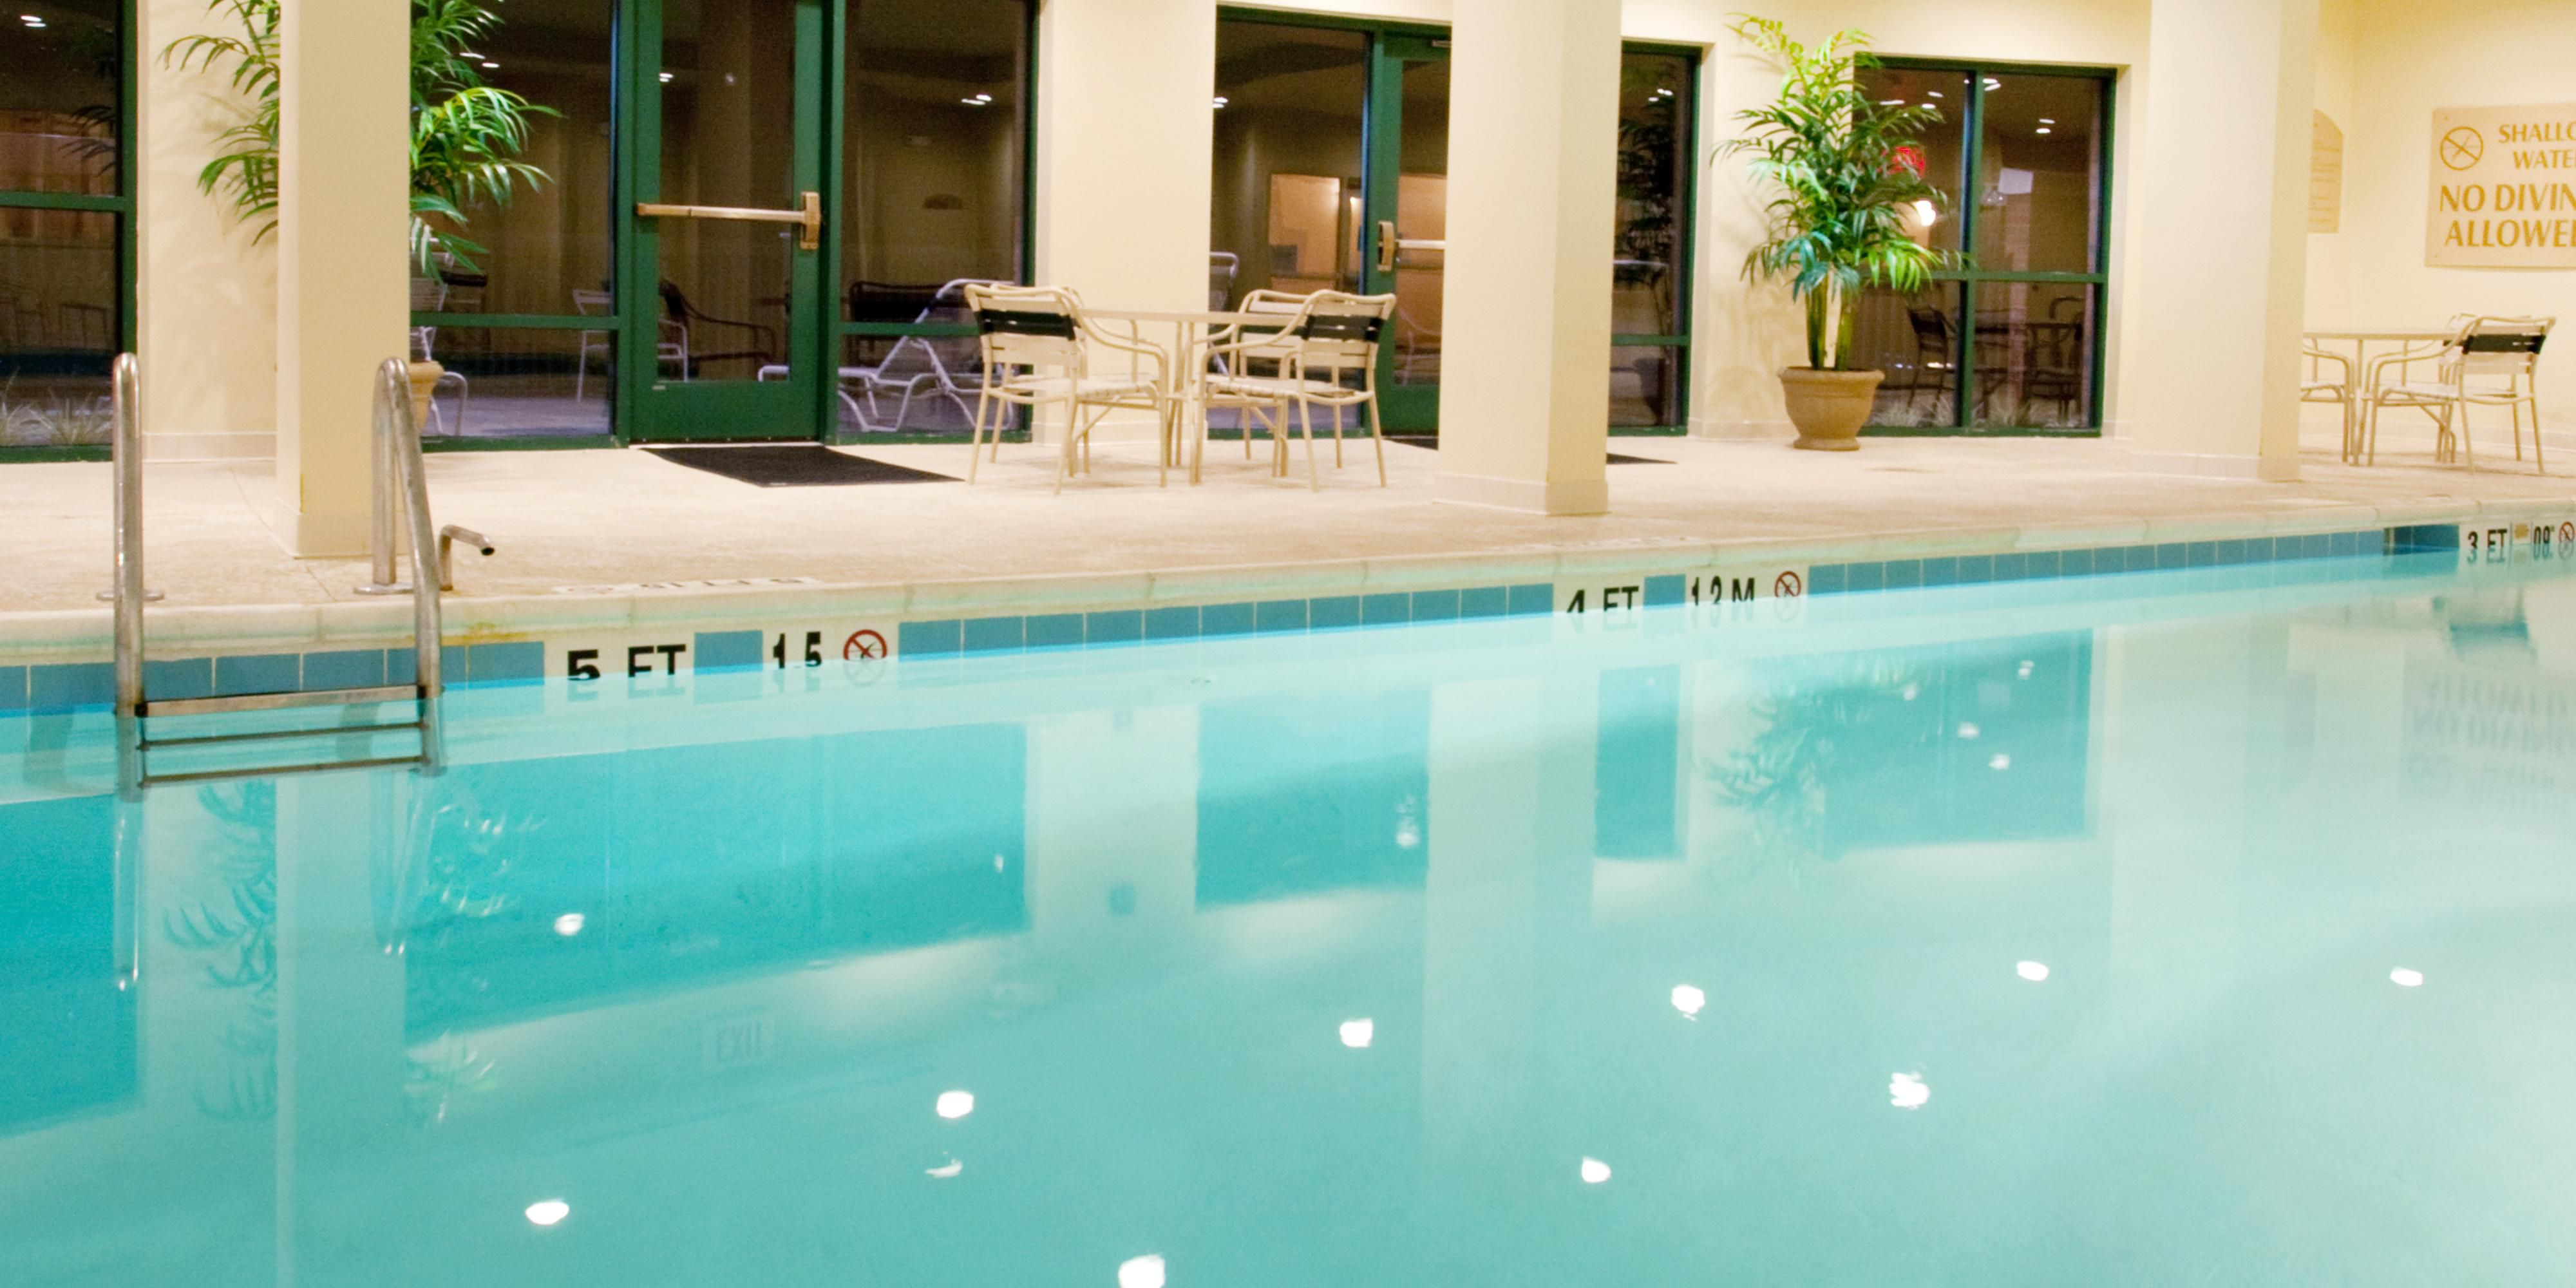 Hotel florence pool florence hotels with pools florence source - Holiday Inn Express And Suites Florence 4259776800 2x1